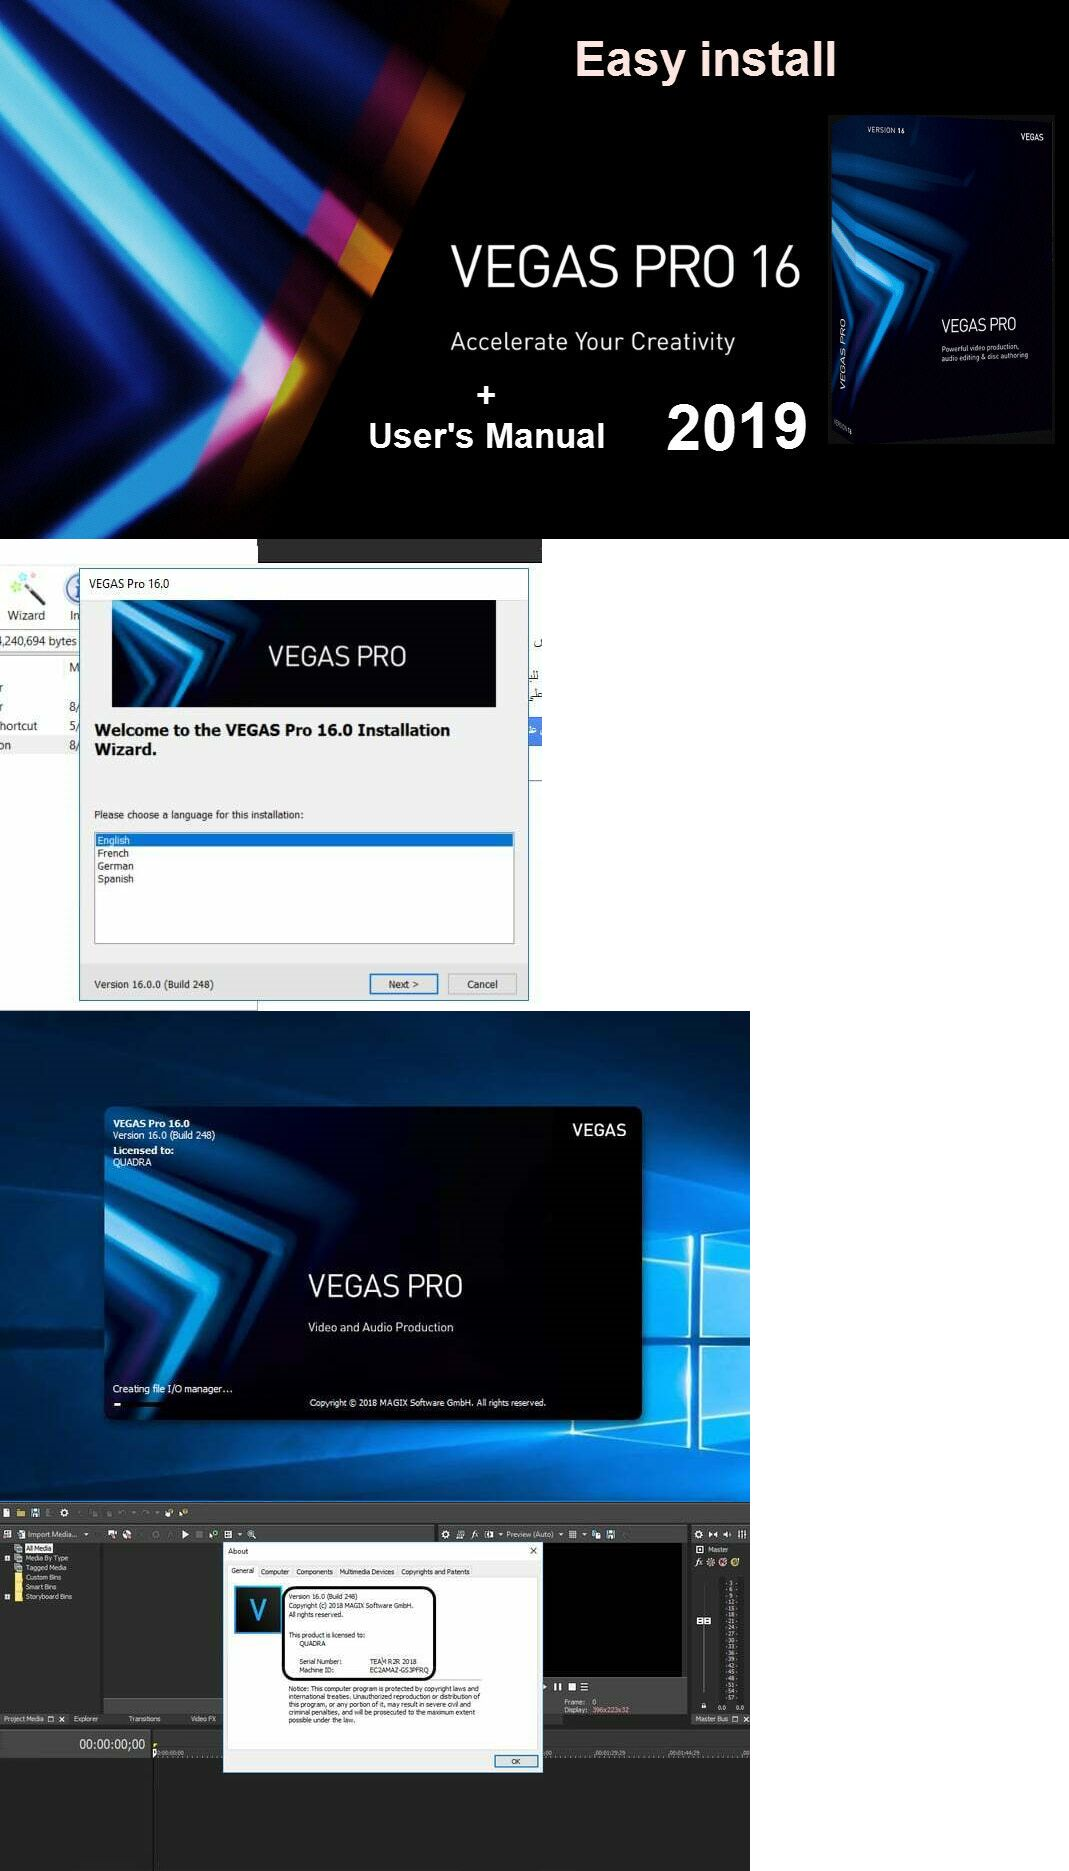 Image Video and Audio 41859: Sony Vegas Pro 16 Professional Video